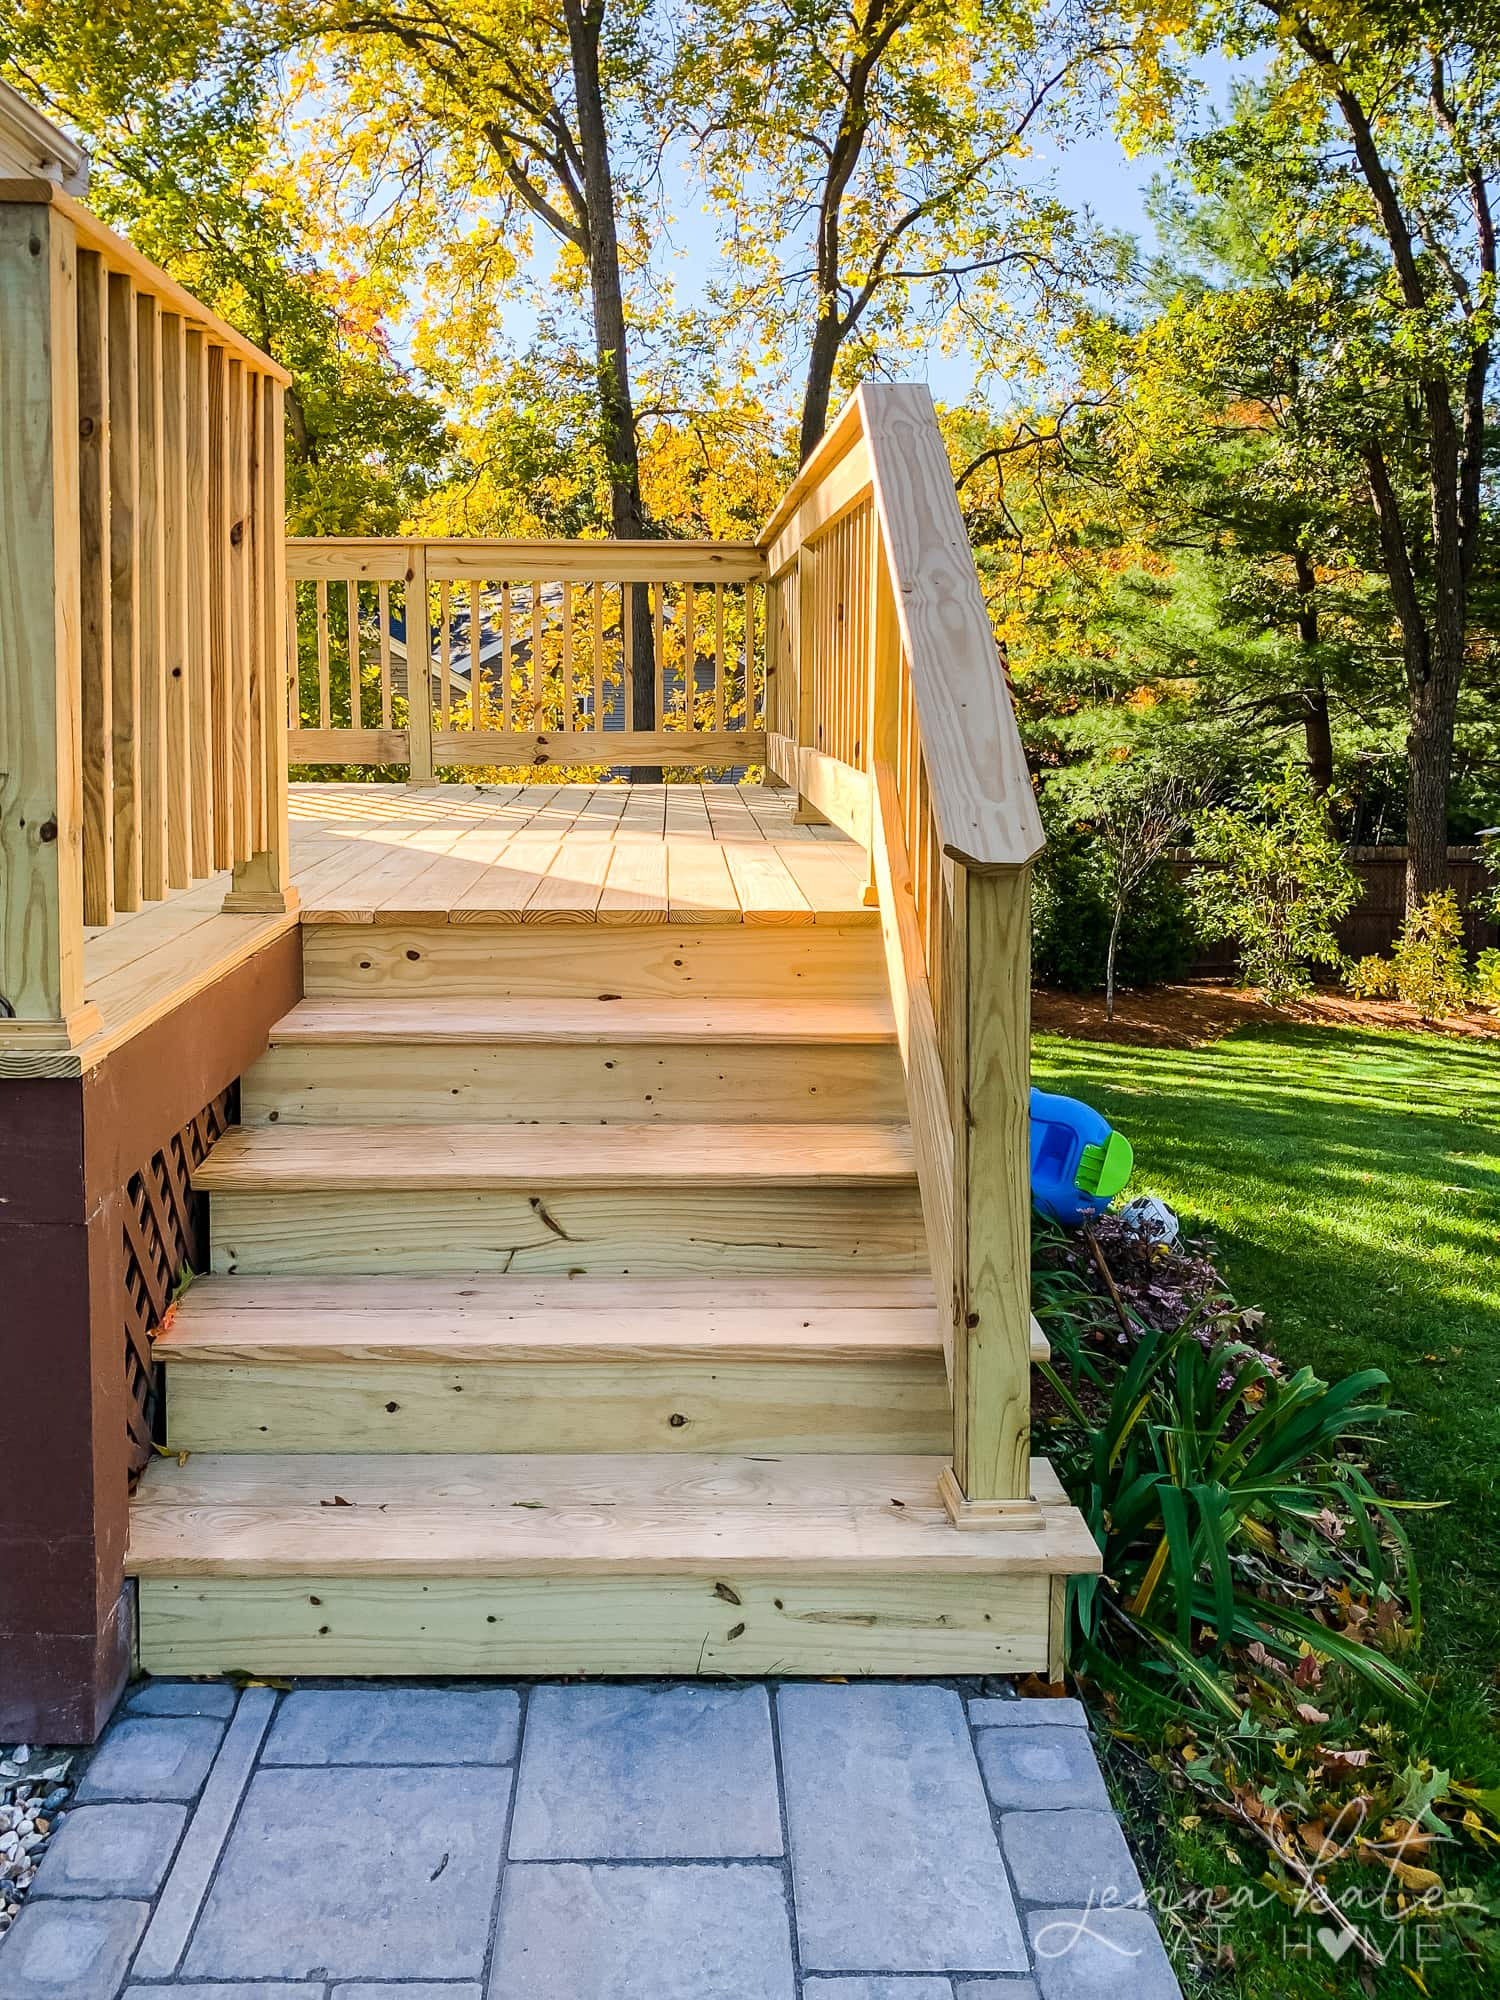 New stairs on deck